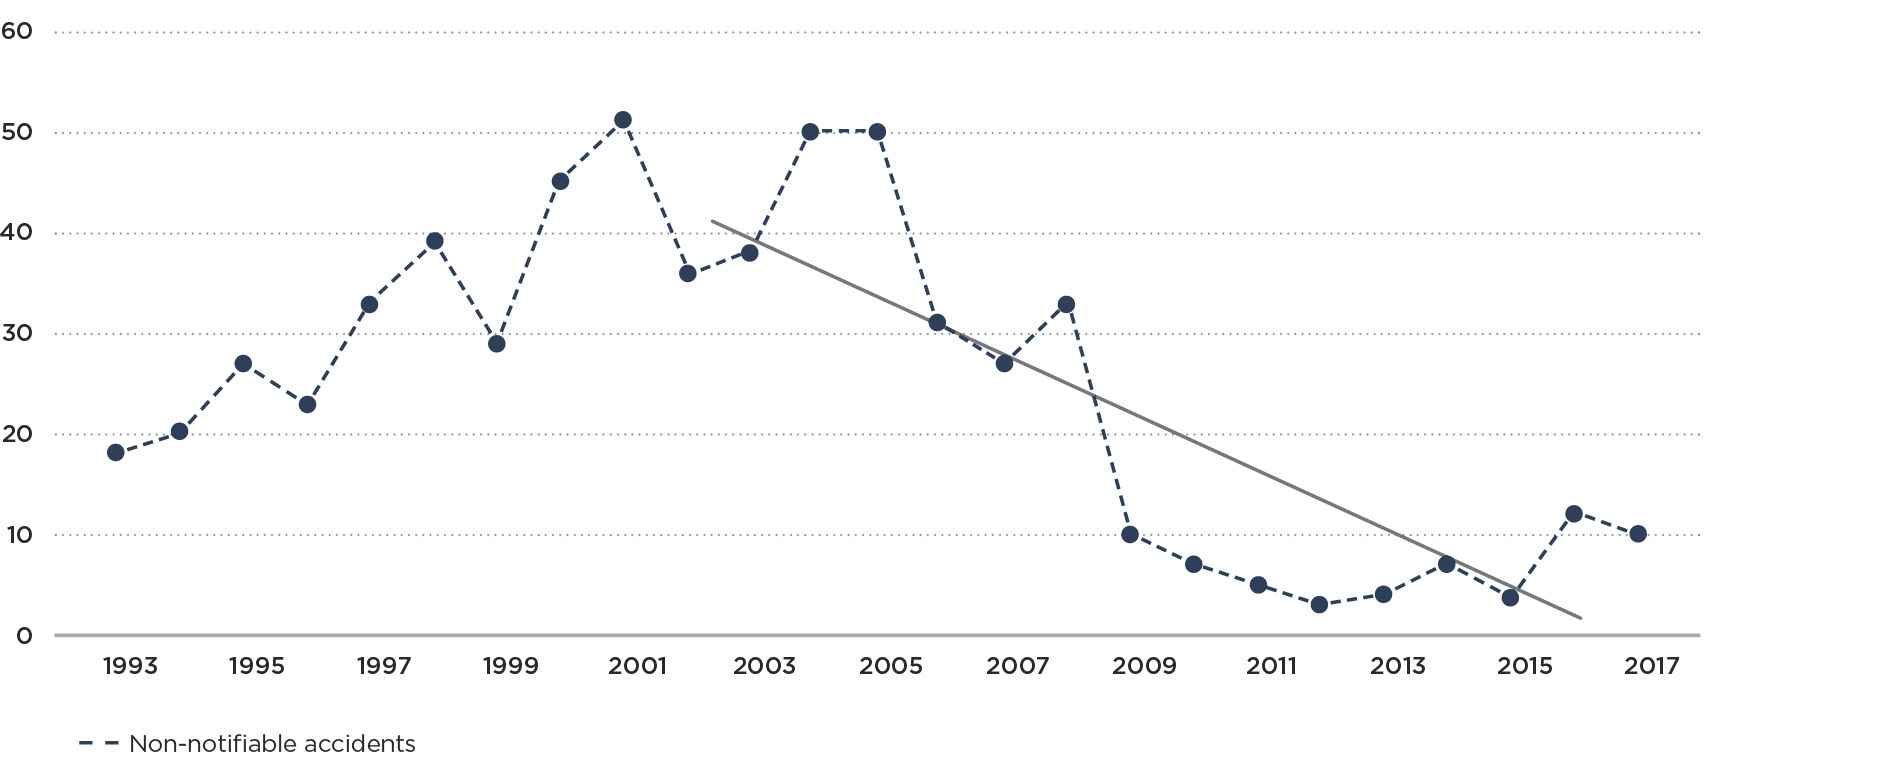 hight resolution of graph 2b non notifiable natural gas accidents